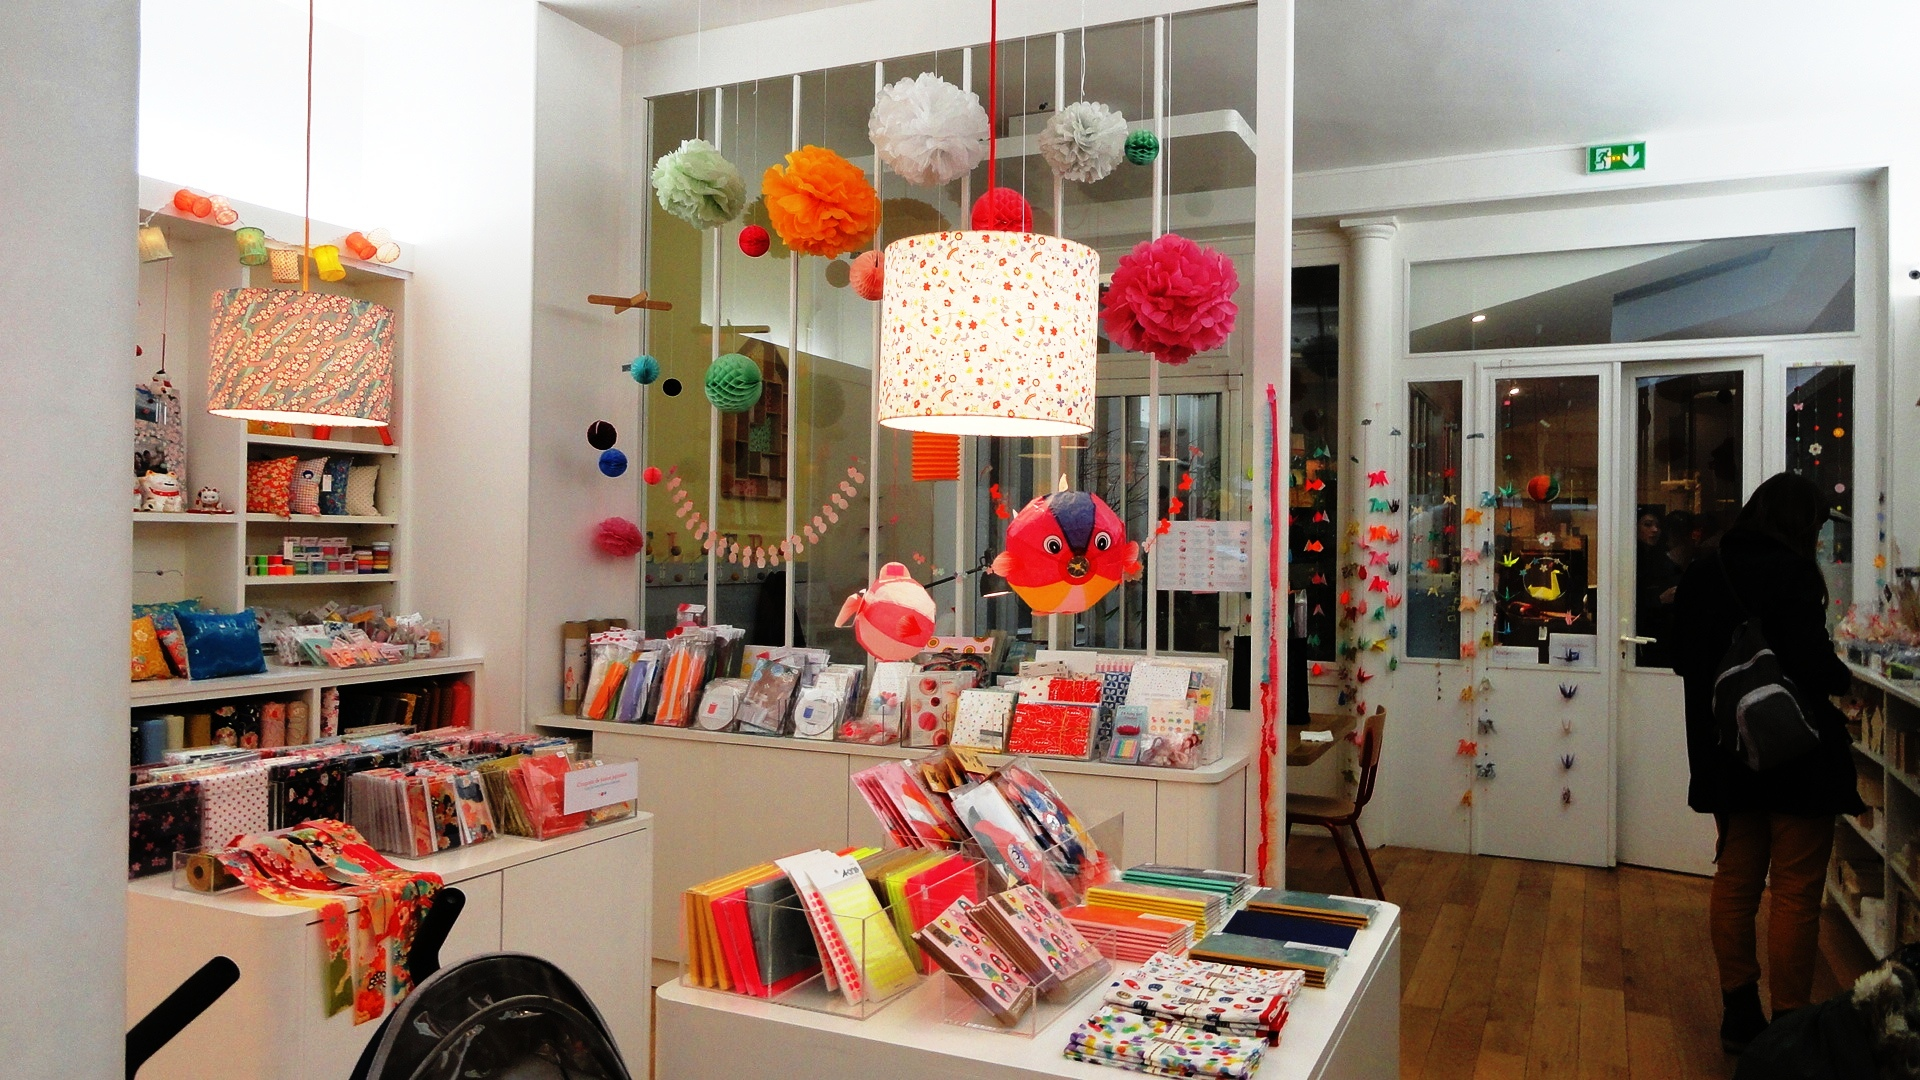 Boutique Adeline Klam - Paris 11e